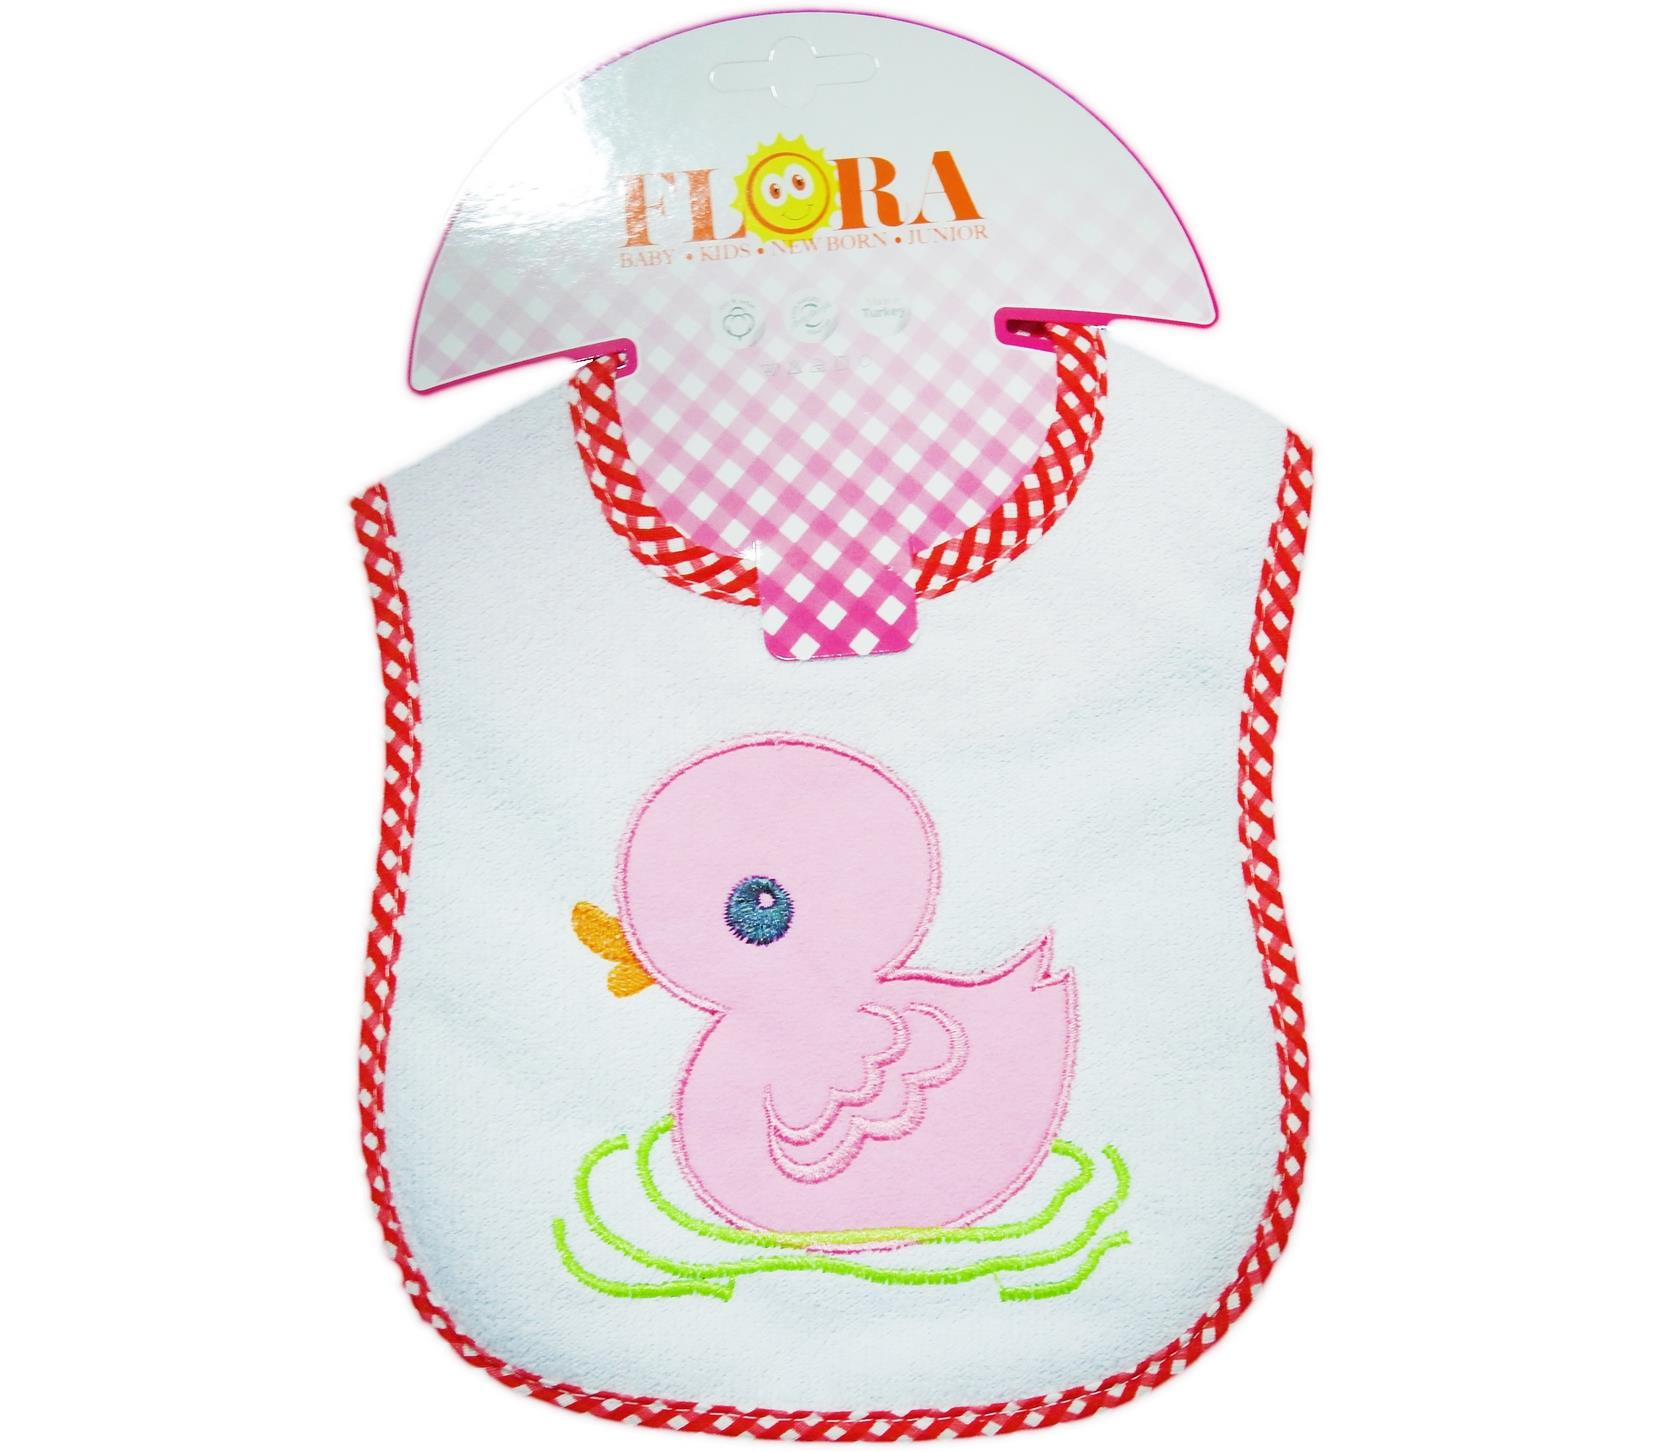 2009 Wholesale duck printed bibs for baby products 6 pieces in package